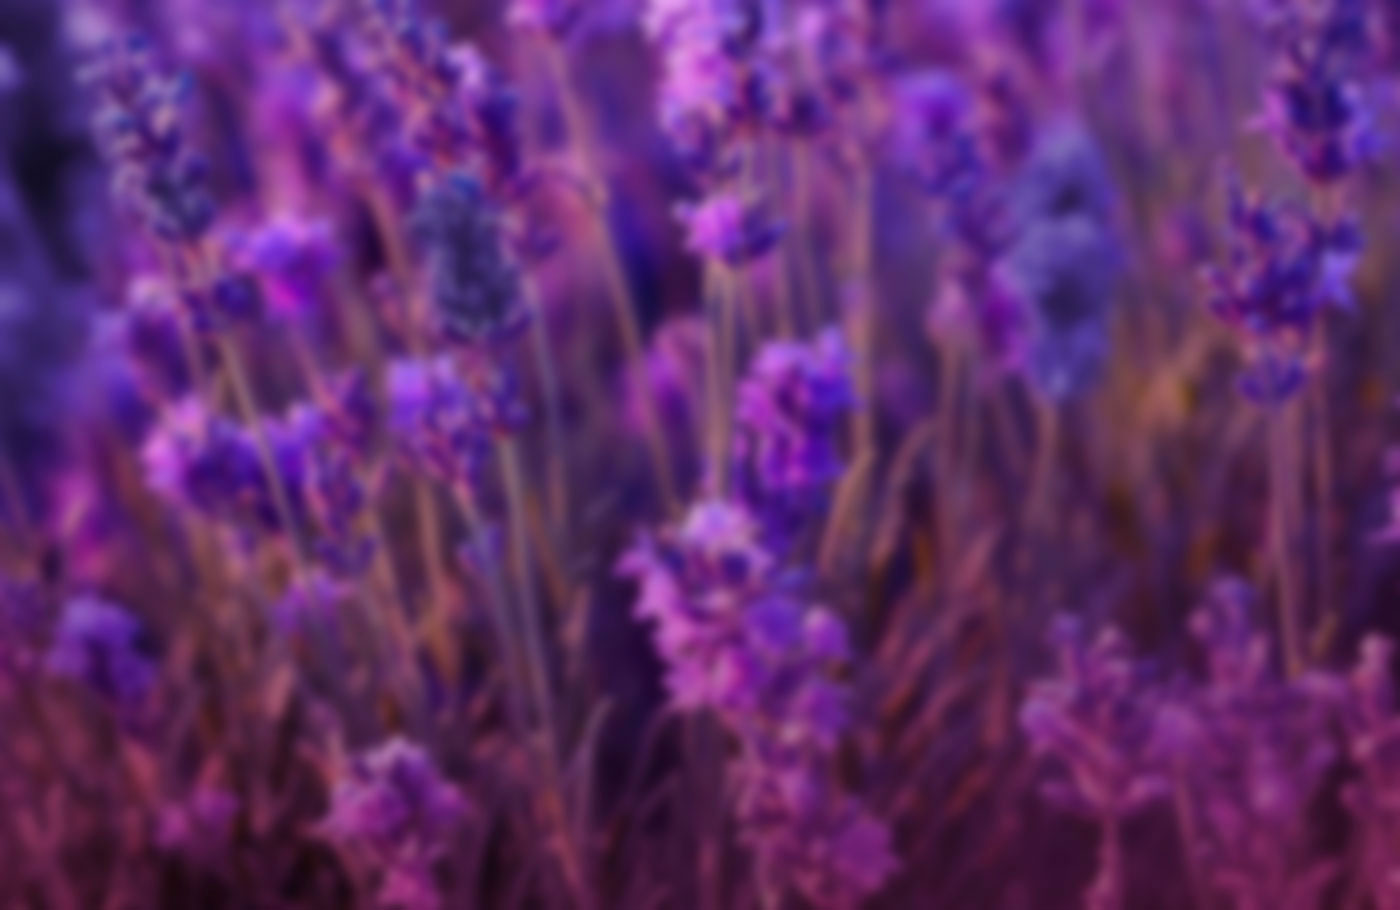 Field of lavender flowers in low light.